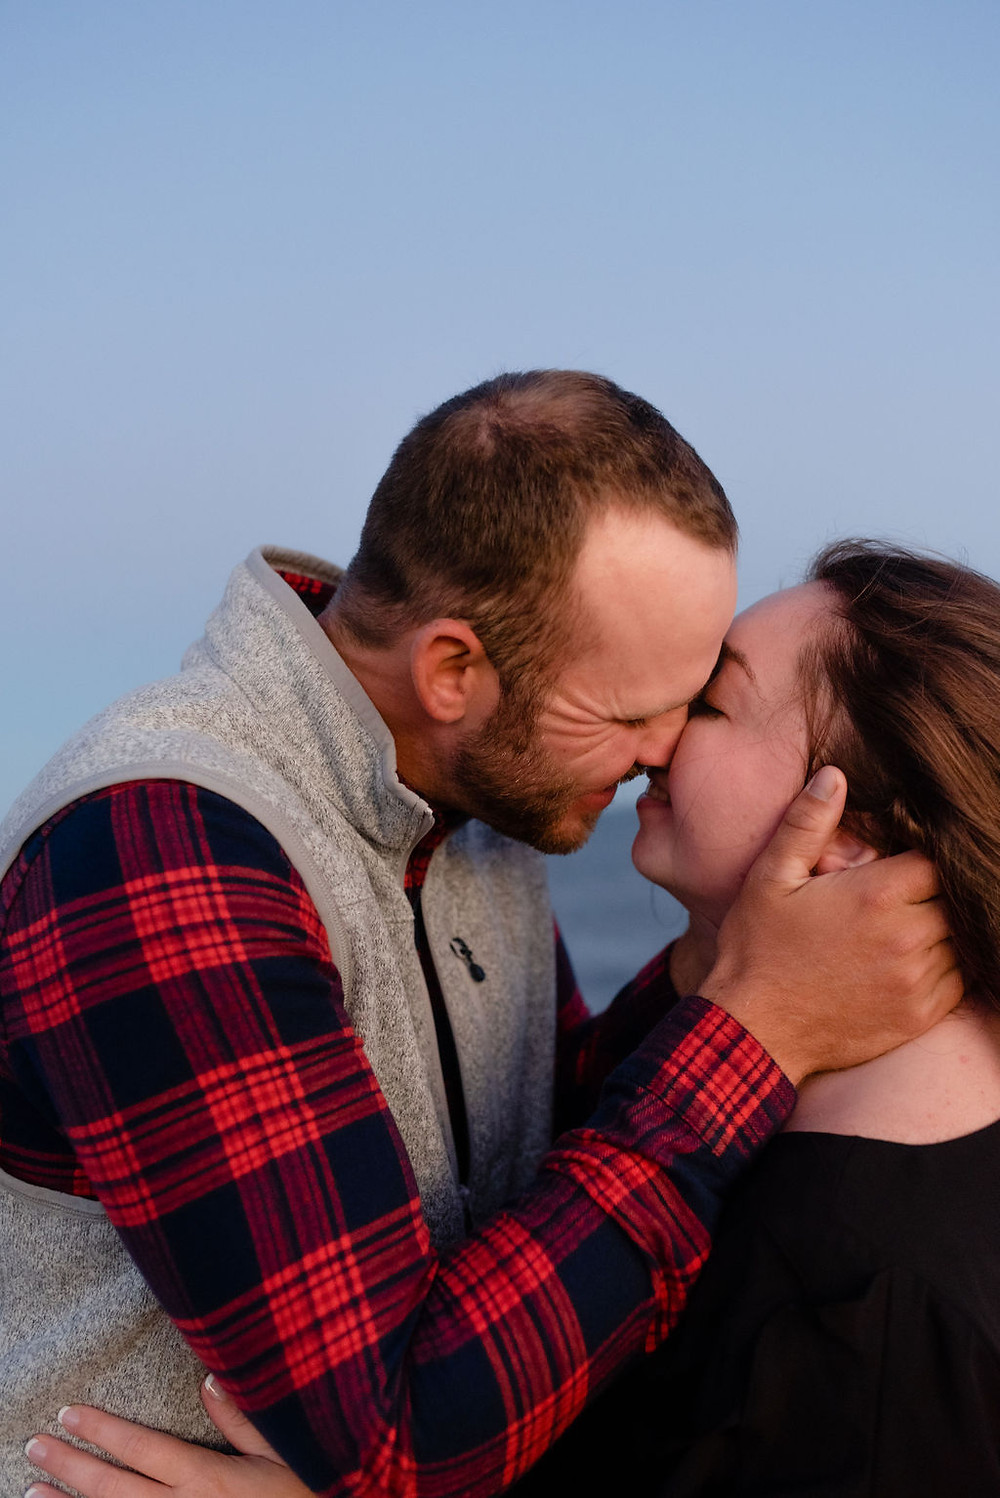 engagement photos at lighthouse inn in West Dennis Cape cod, MA